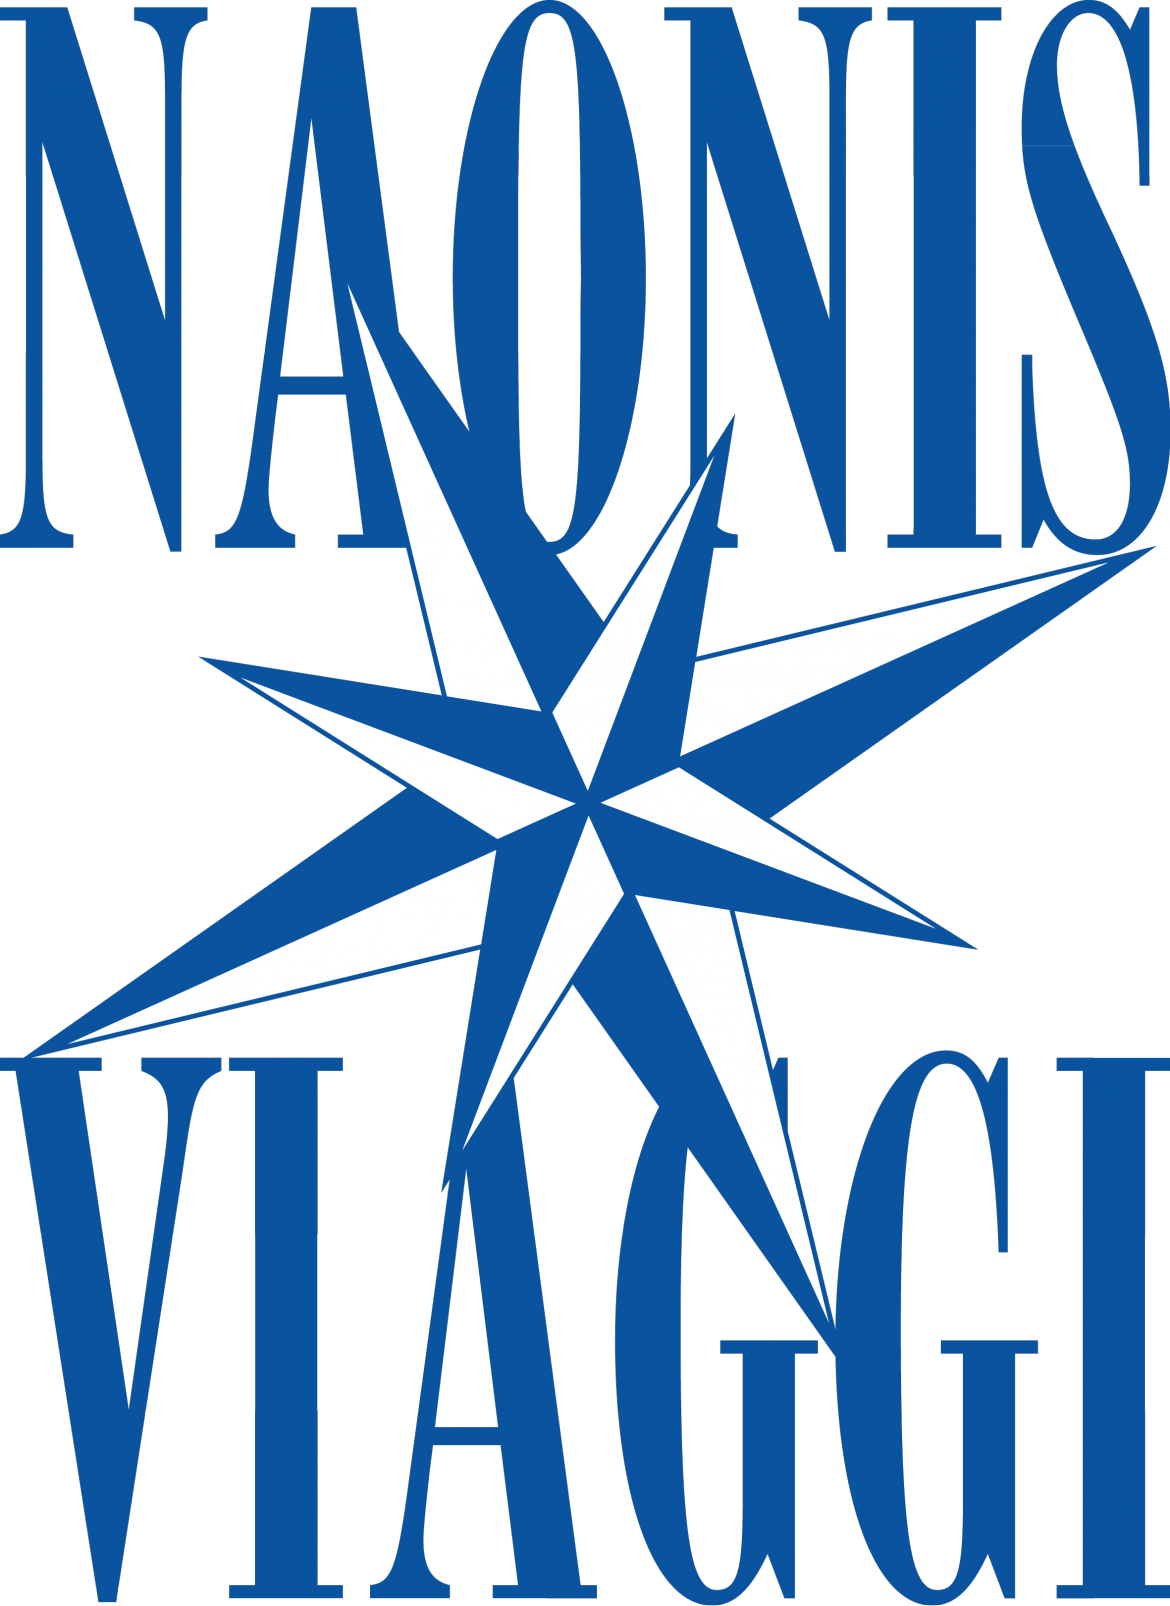 naonis-logo-verticale.png